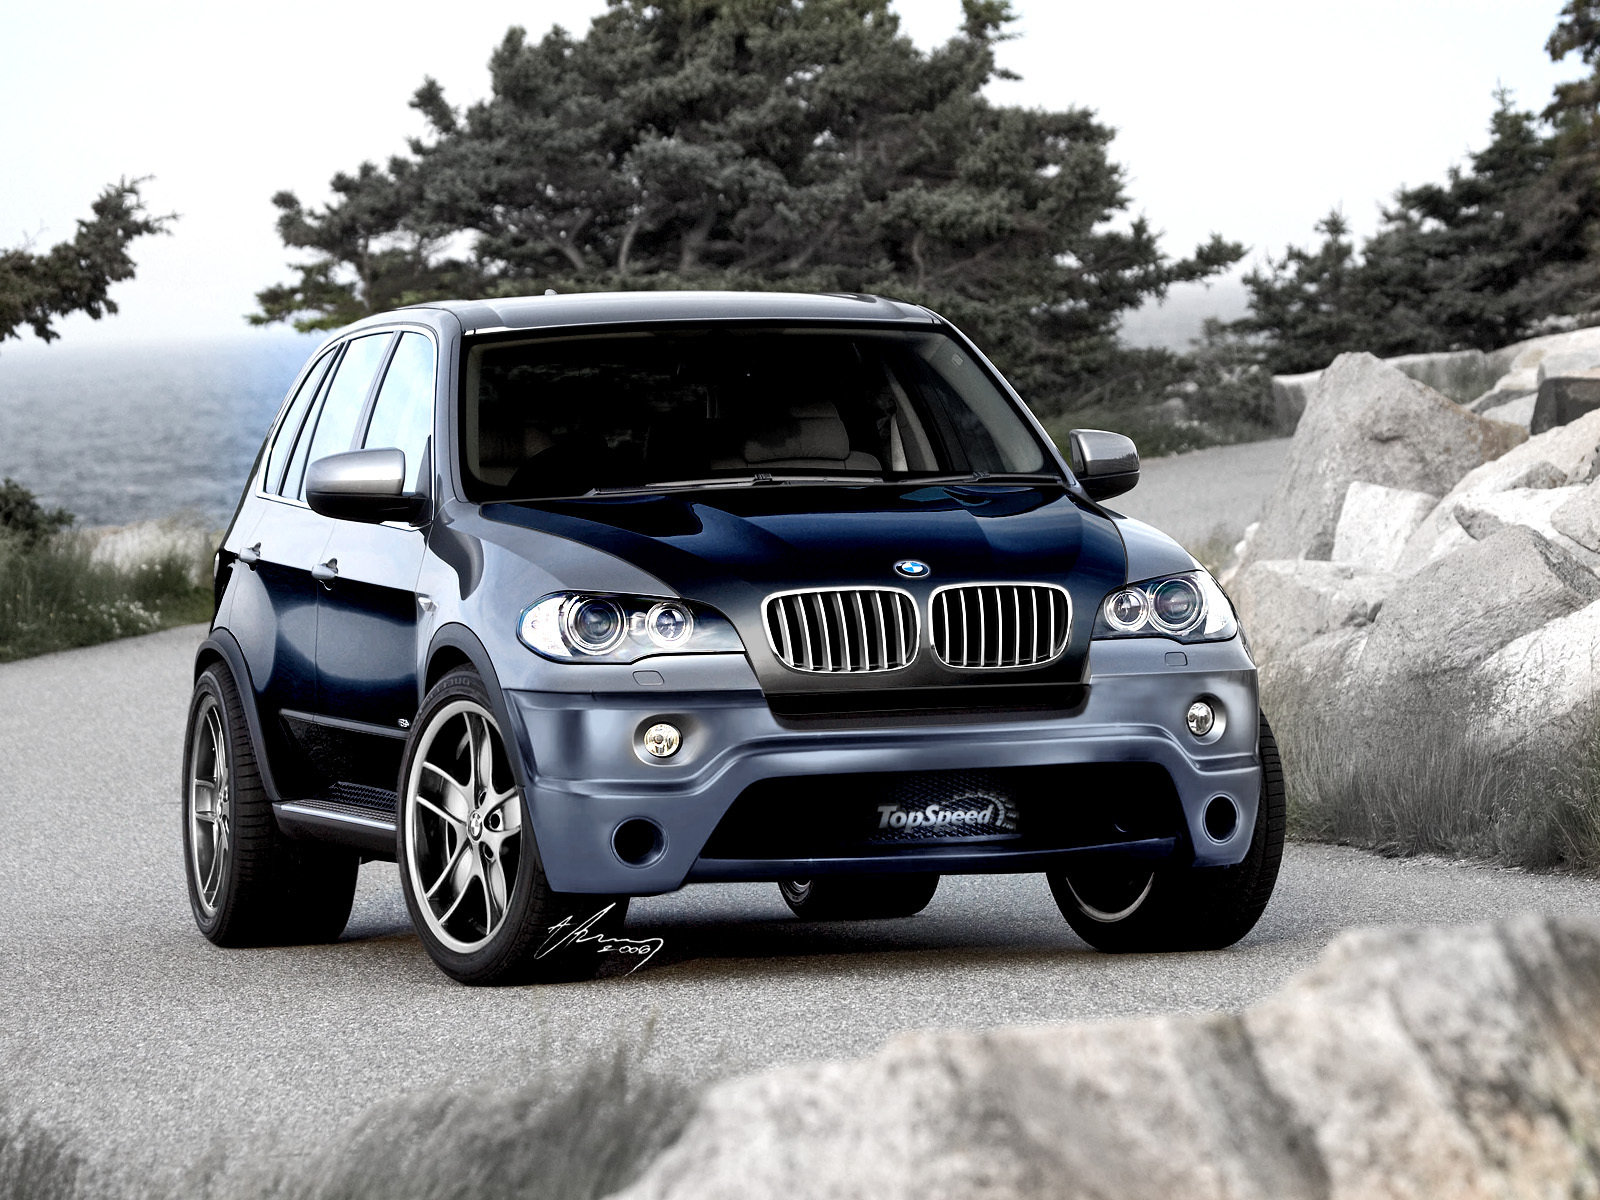 2007 bmw x5 picture 92680 car review top speed. Black Bedroom Furniture Sets. Home Design Ideas